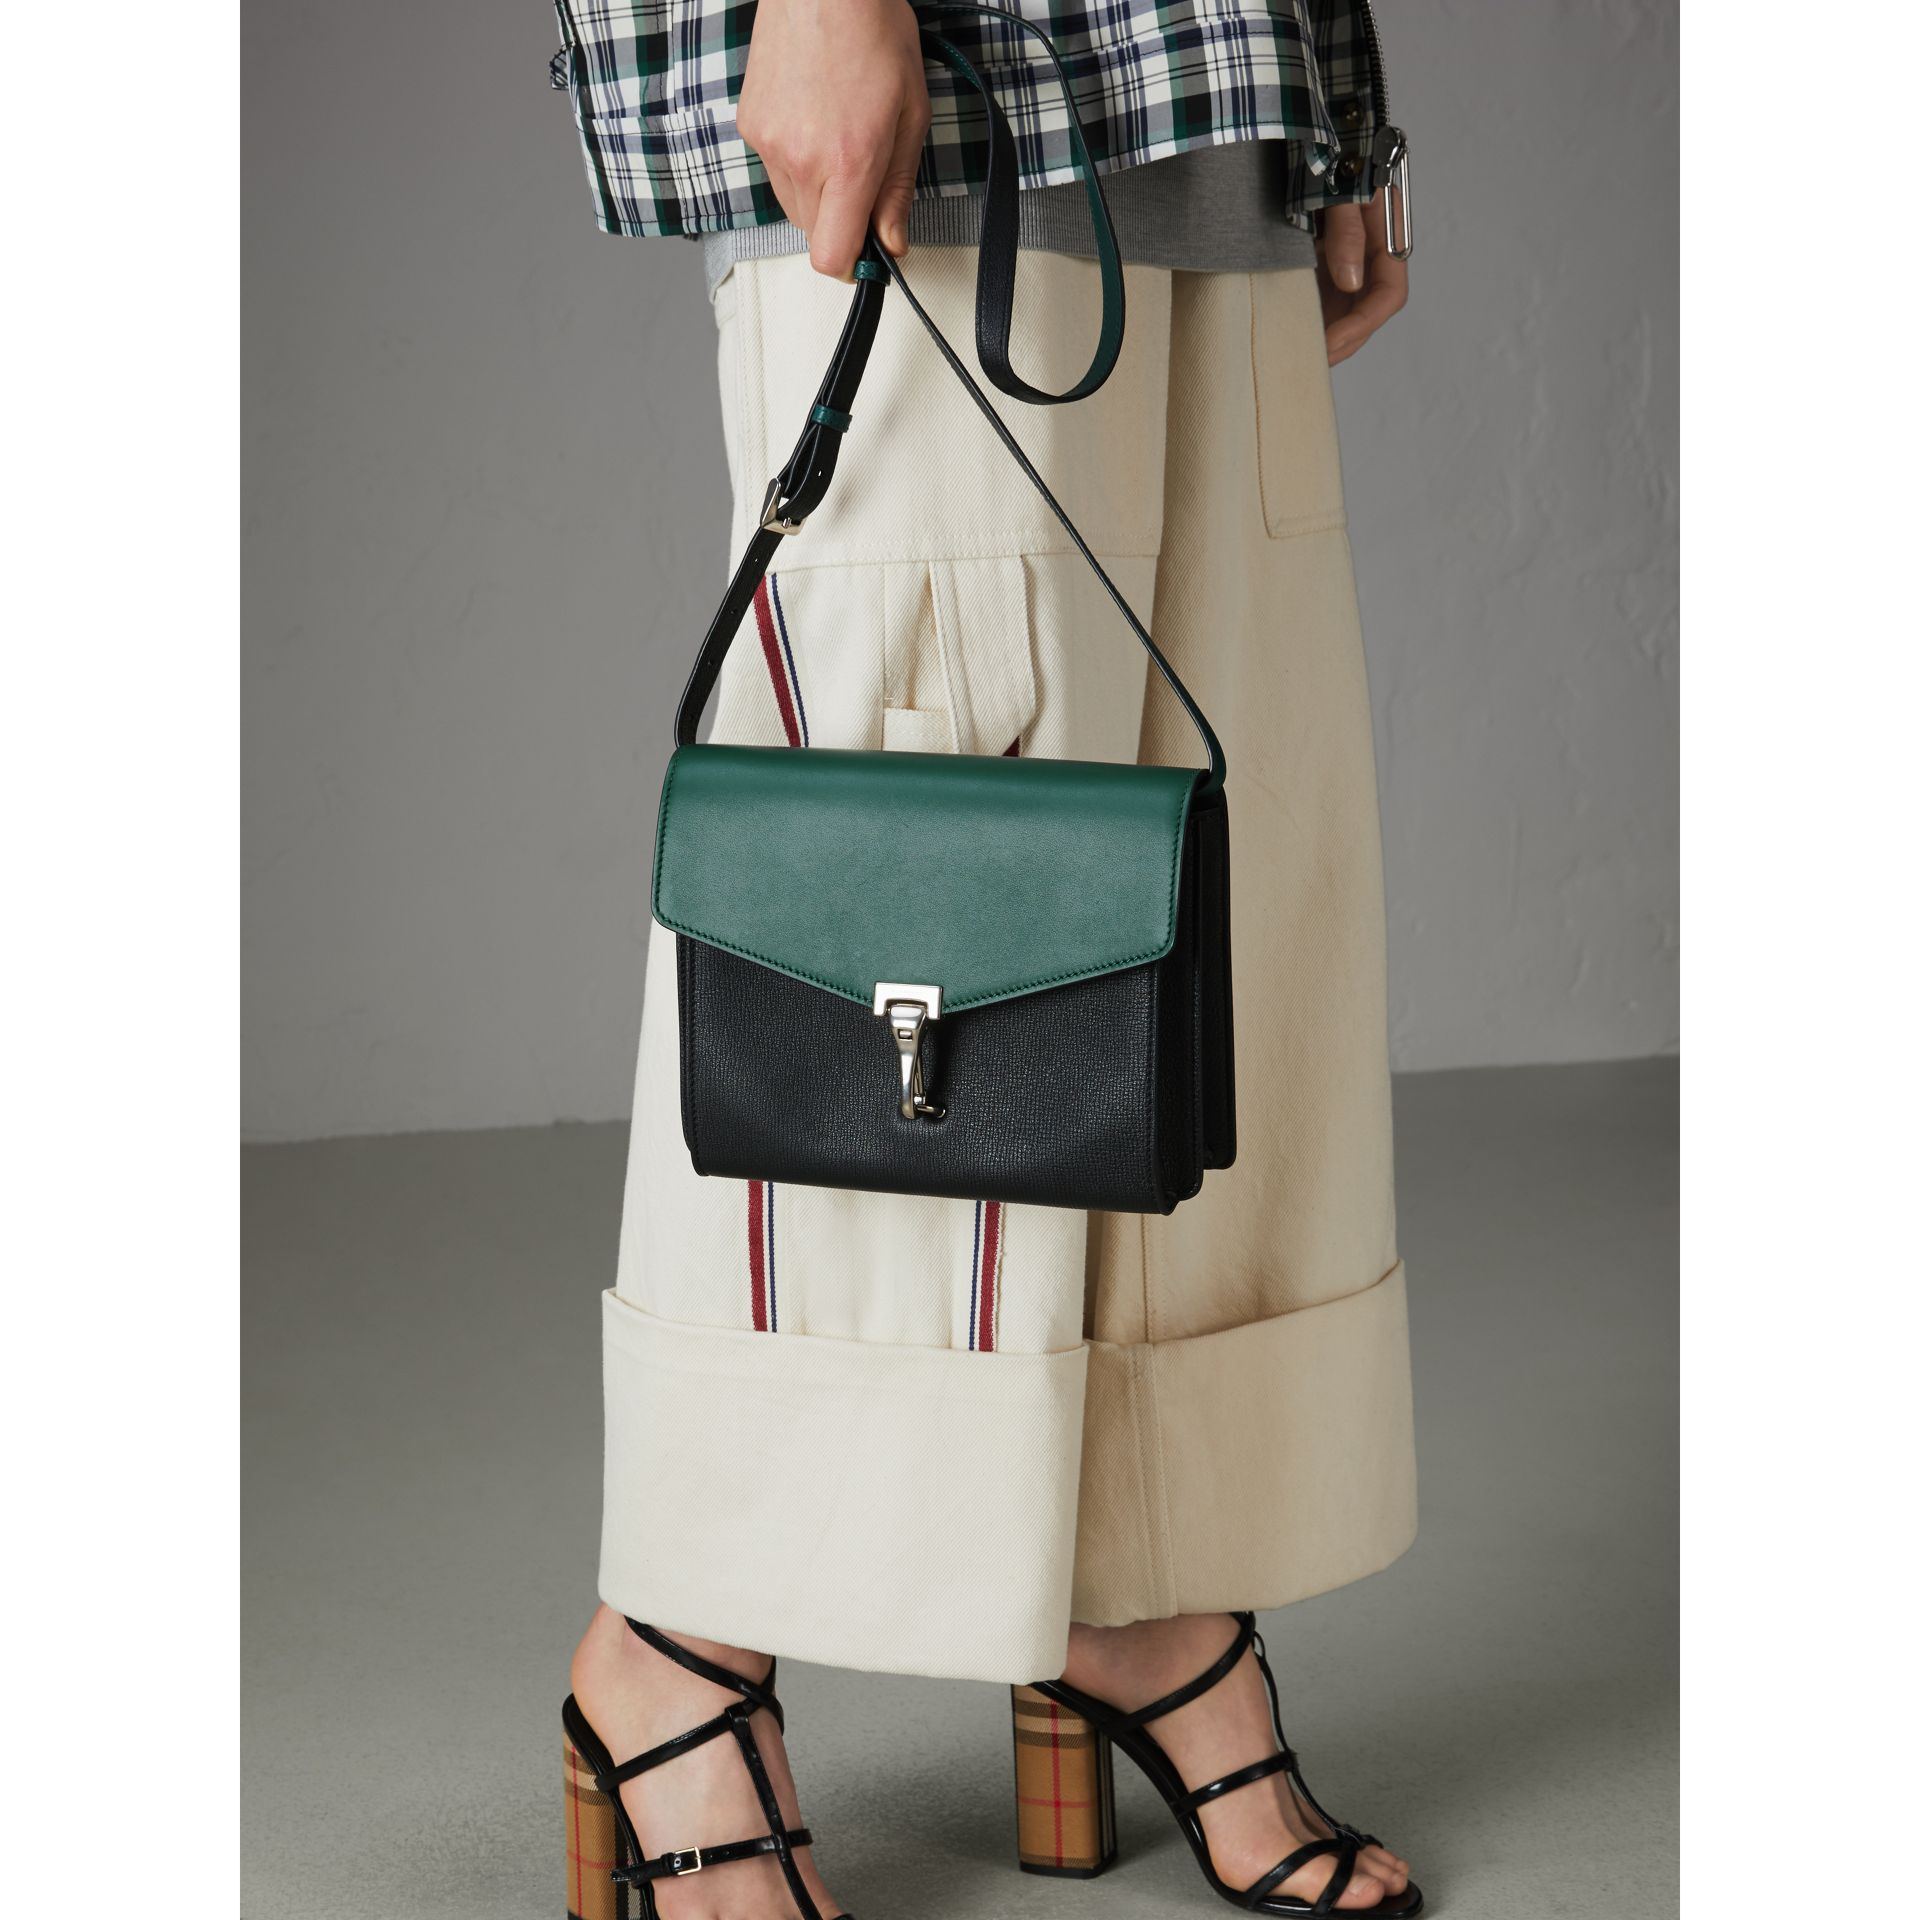 Two-tone Leather Crossbody Bag in Black/sea Green - Women | Burberry United Kingdom - gallery image 3